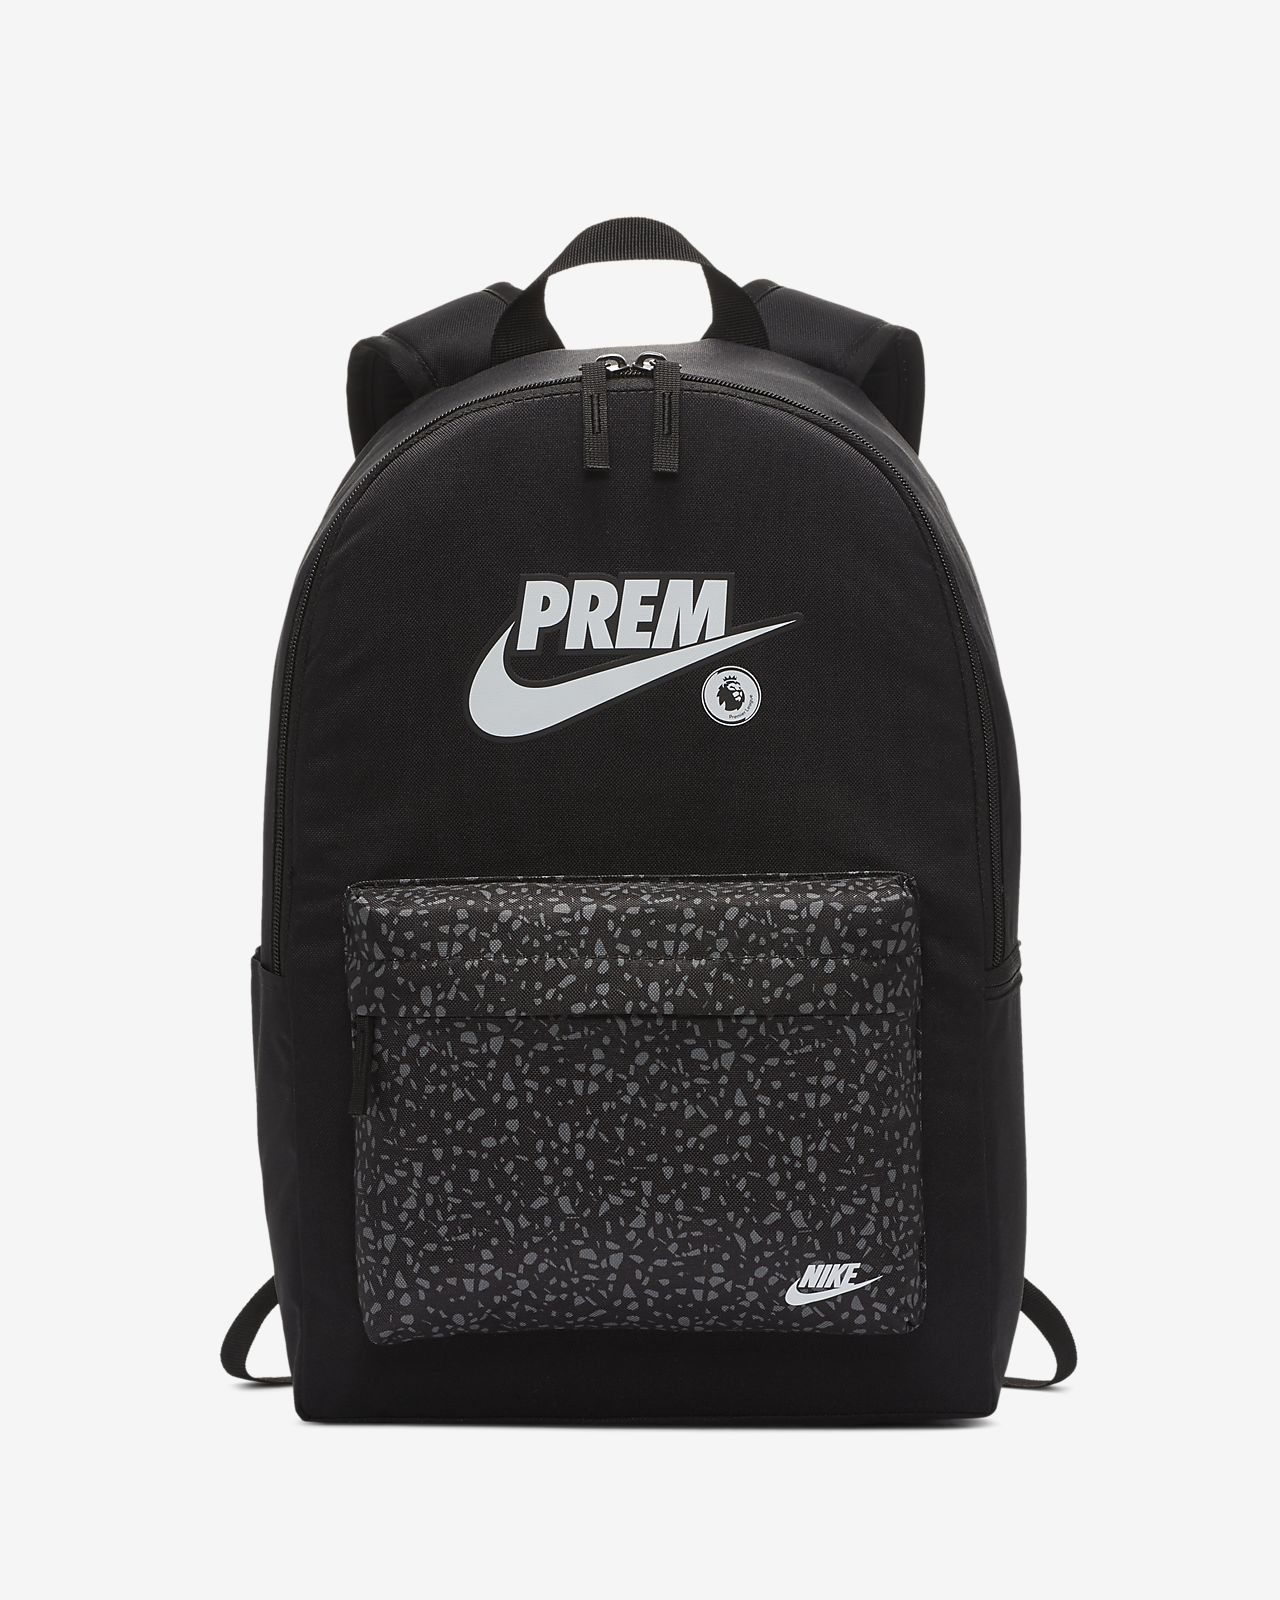 Mochila de fútbol English Premier League Nike